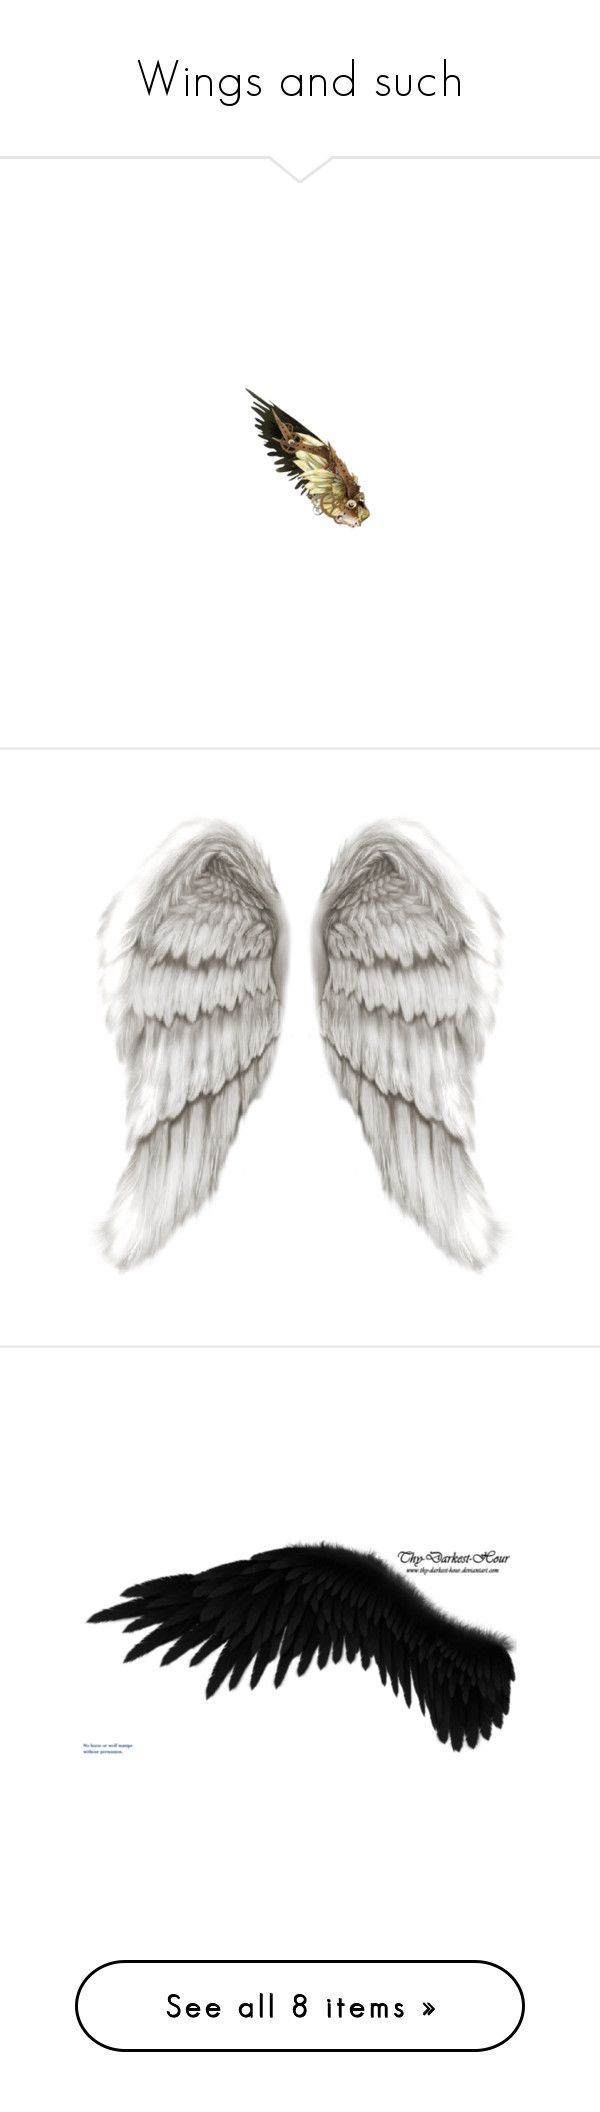 """""""Wings and such"""" by elizasorensen ❤ liked on Polyvore featuring costumes, wings, steampunk, doll parts, fillers, doll halloween costume, steam punk halloween costumes, baby doll halloween costume, babydoll costume and steam punk costume"""